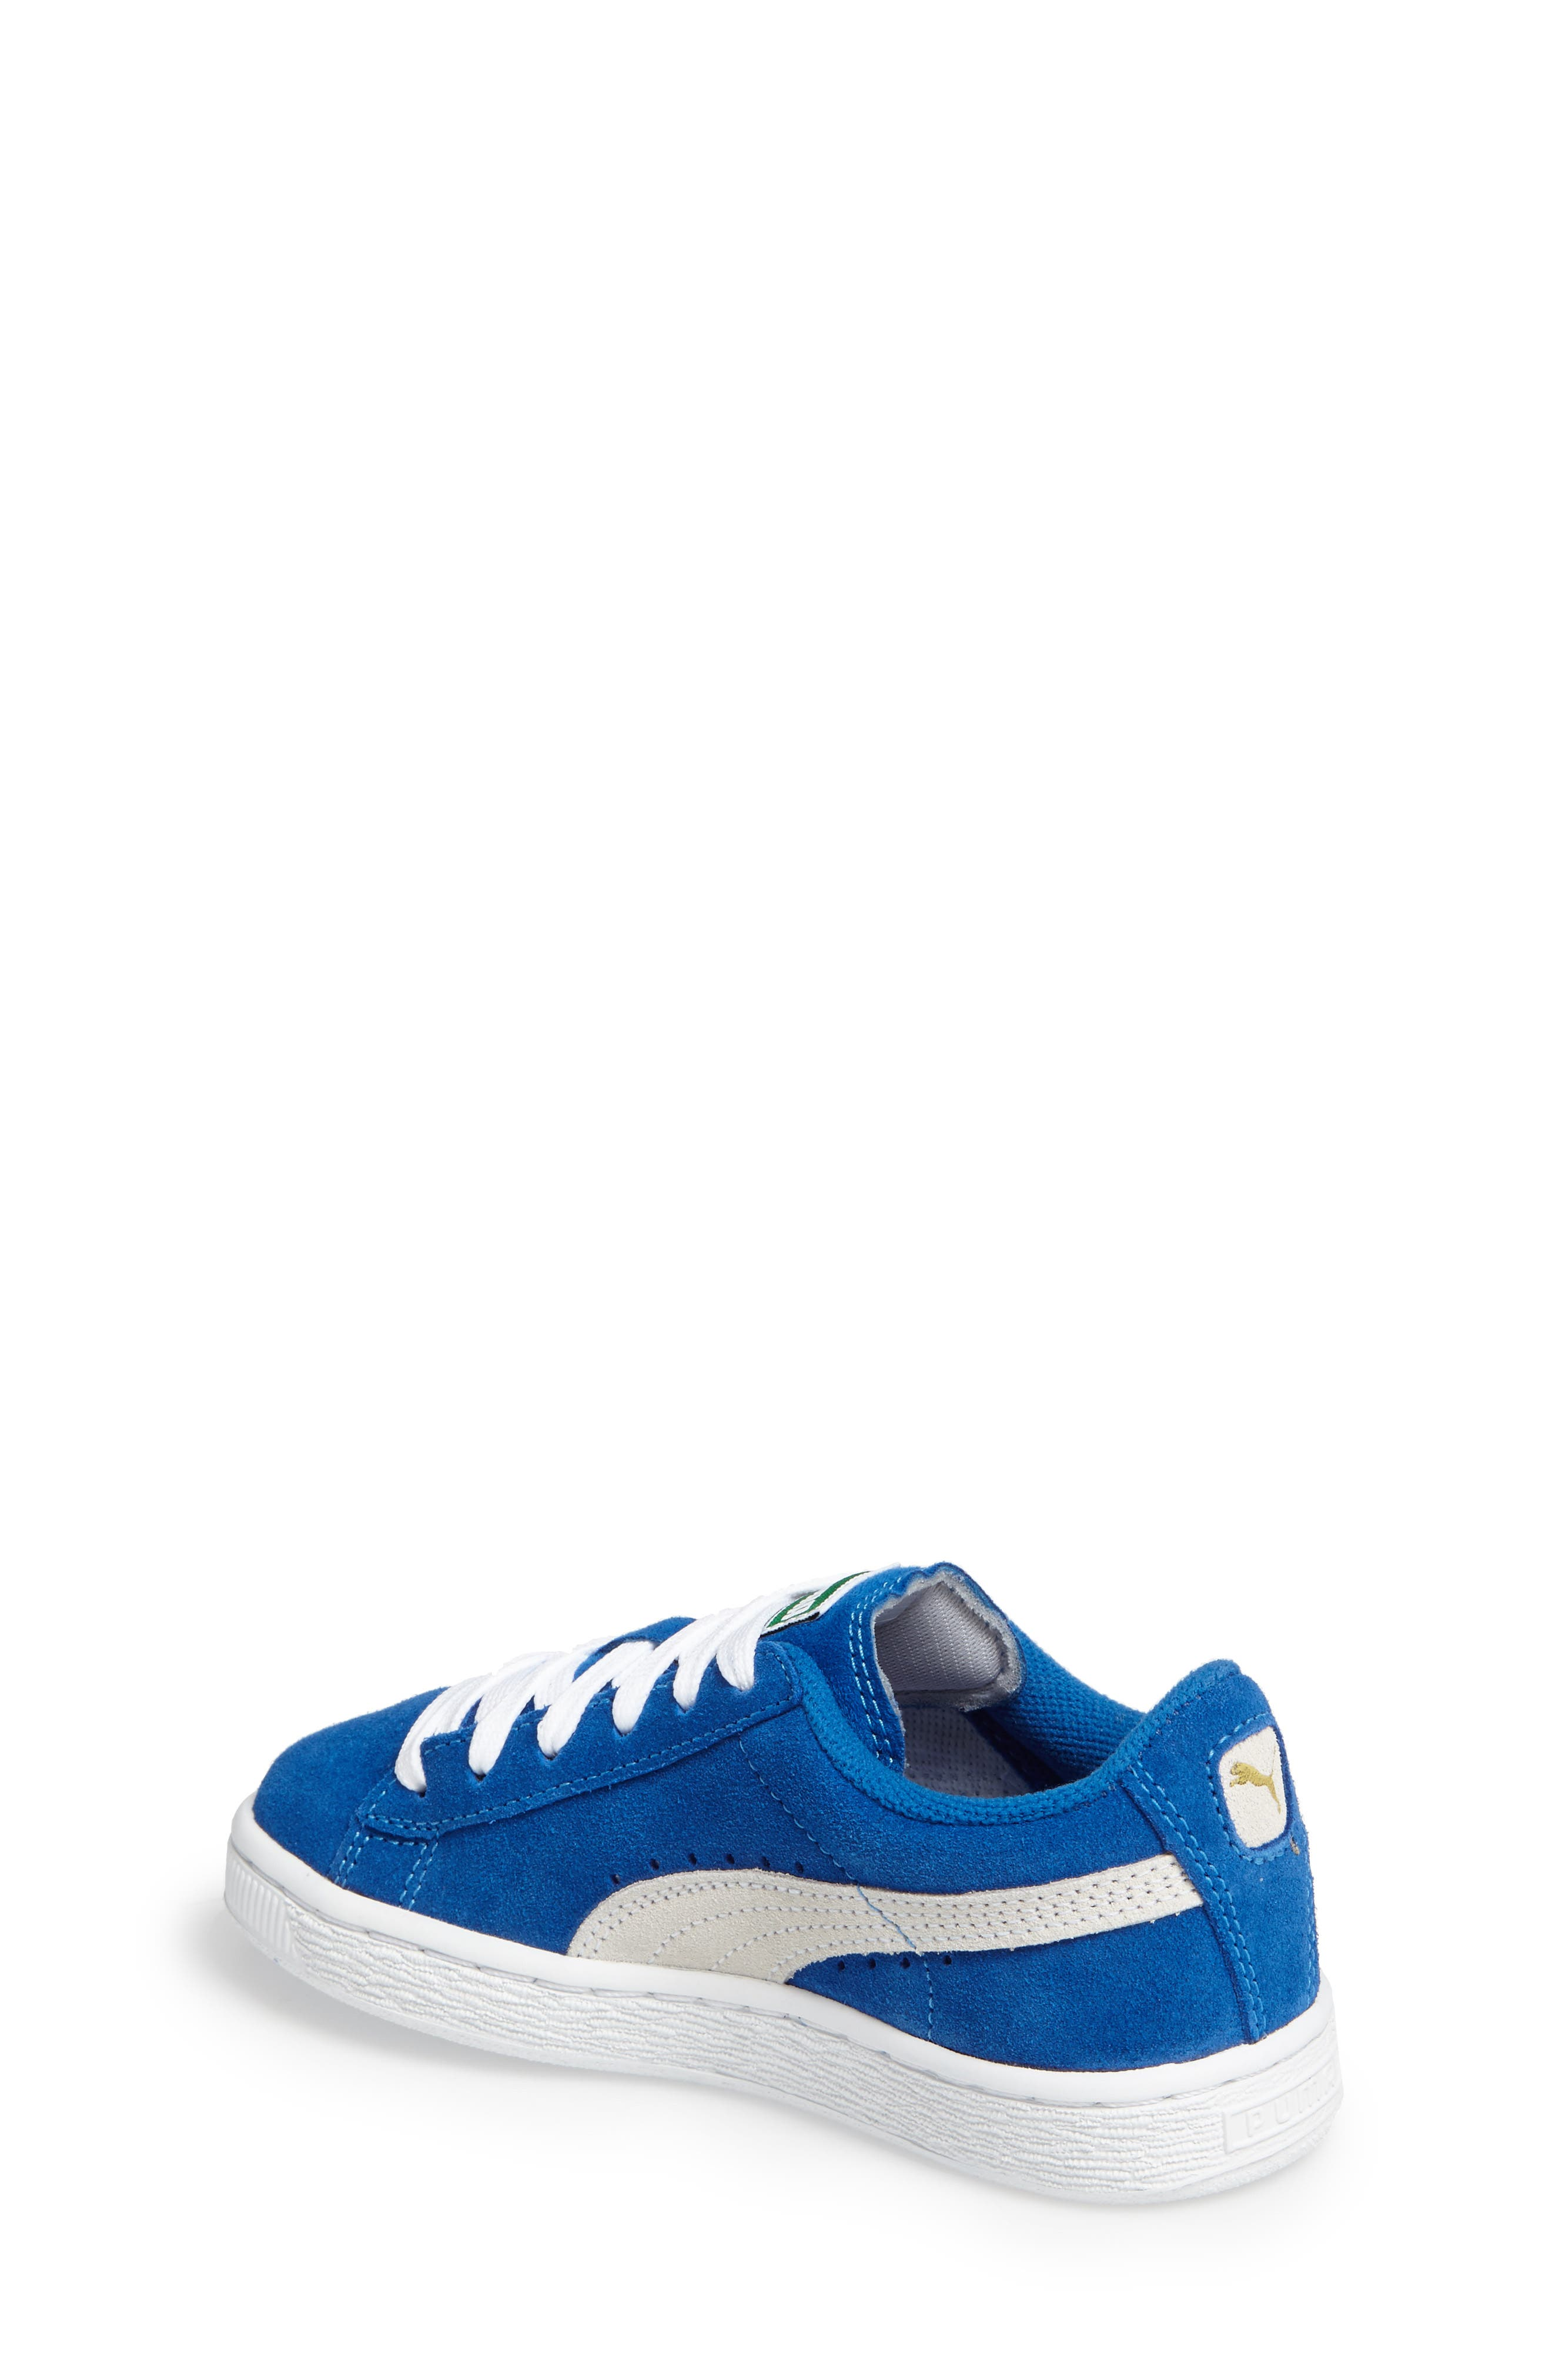 Suede PS Sneaker,                             Alternate thumbnail 2, color,                             400